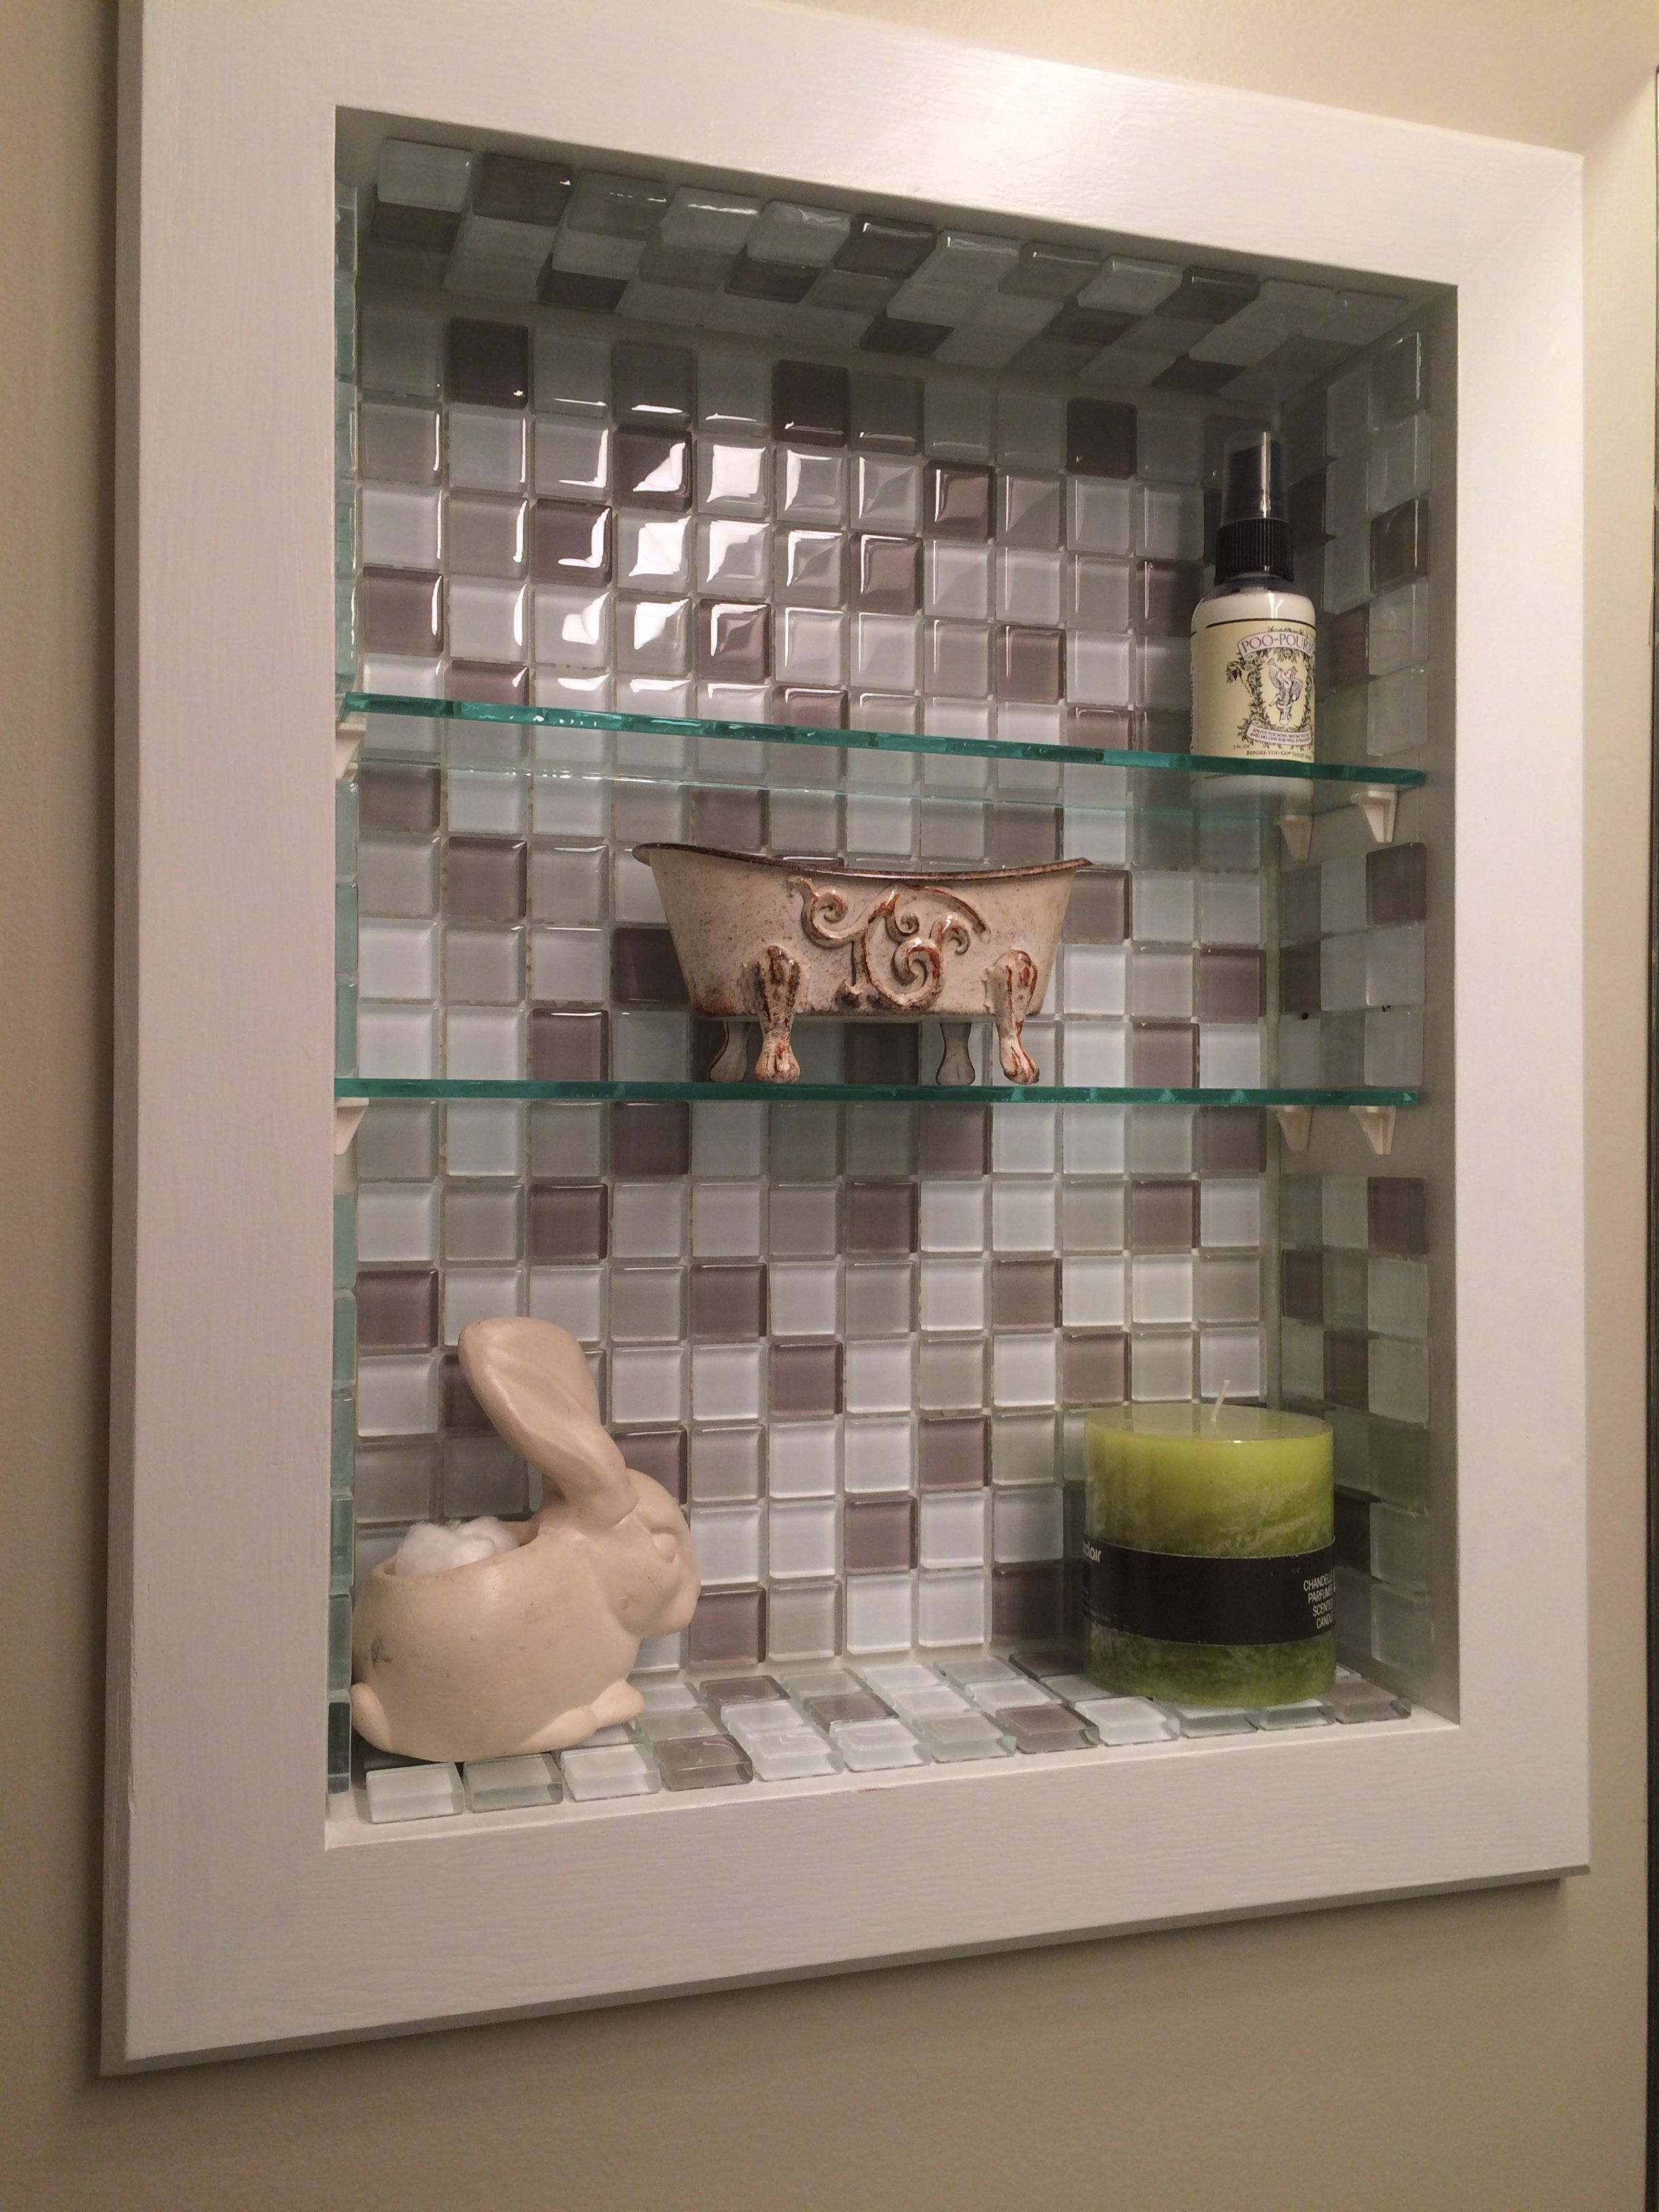 Medicine Cabinet Makeover Removed Door Painted Frame And Installed Tile Much Bette Bathroom Cabinets Diy Medicine Cabinet Makeover Bathroom Mirror Makeover